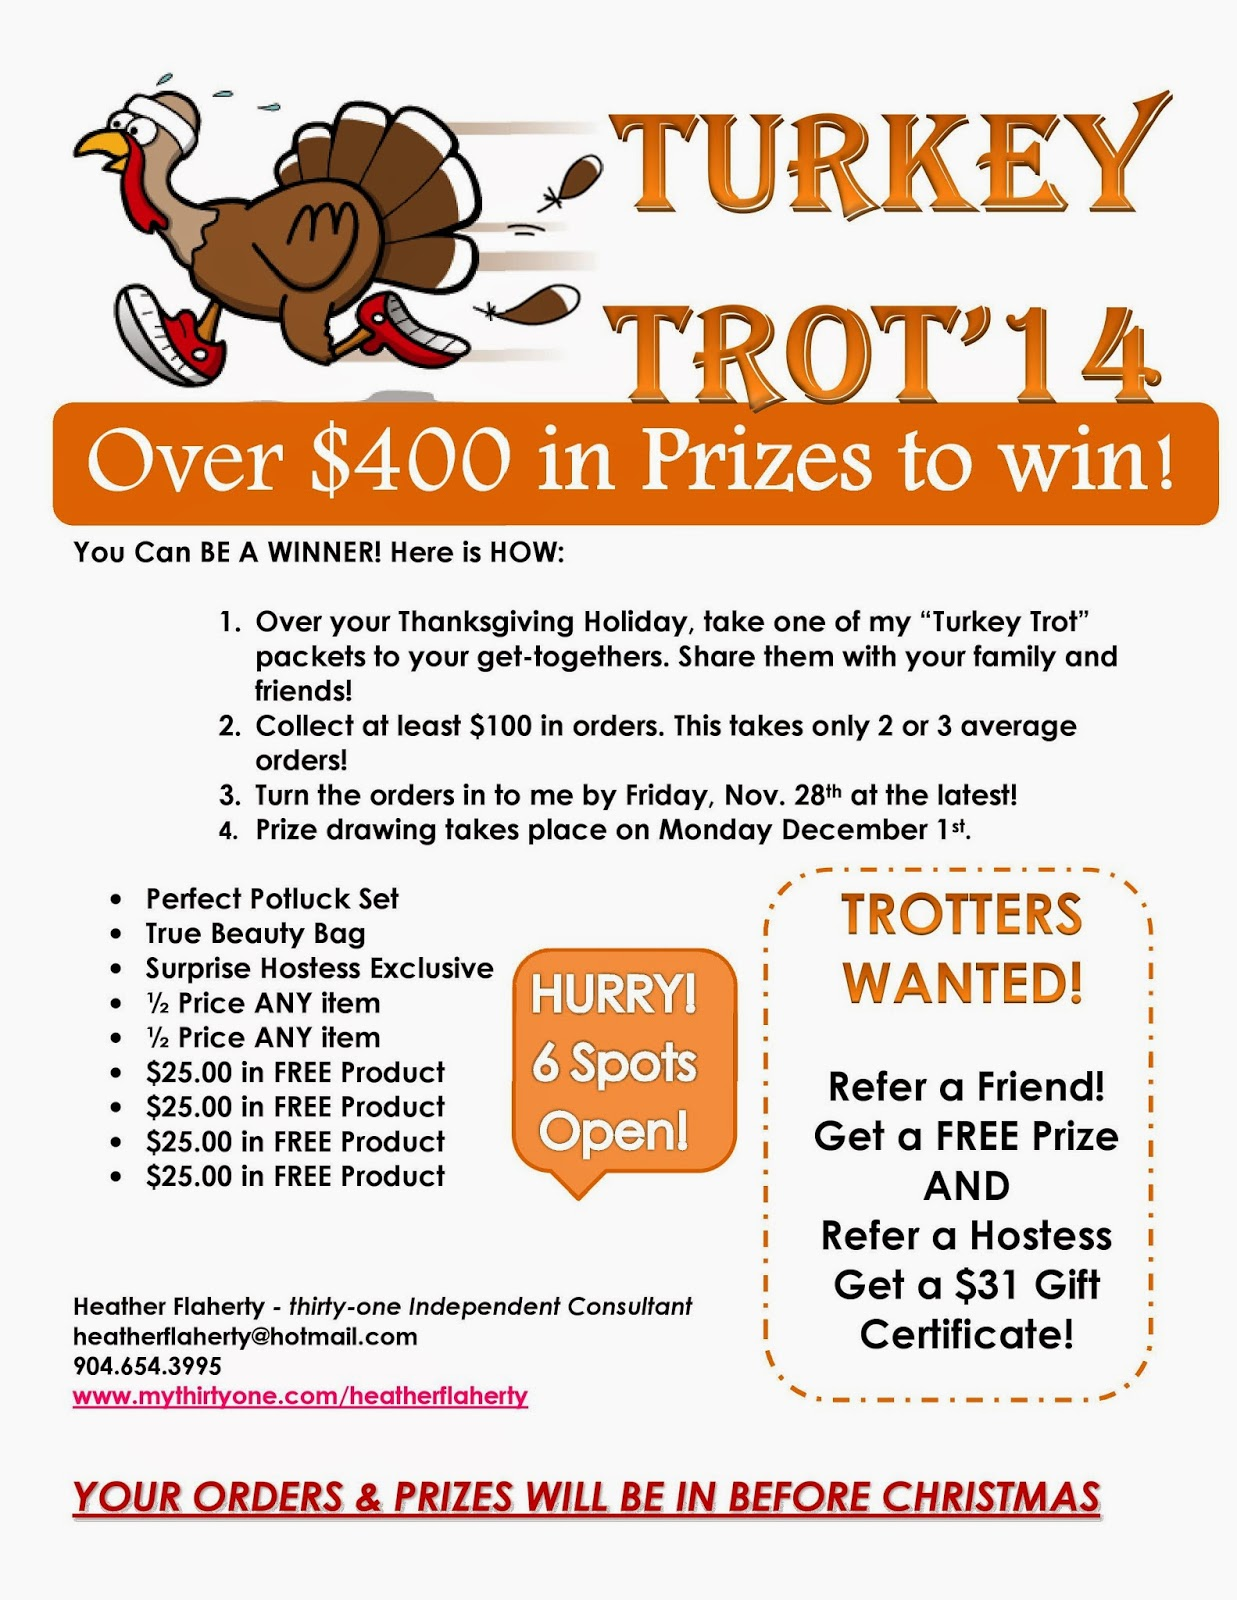 Thirty one november customer special 2014 - And Sign Up To Be A Turkey Trotter